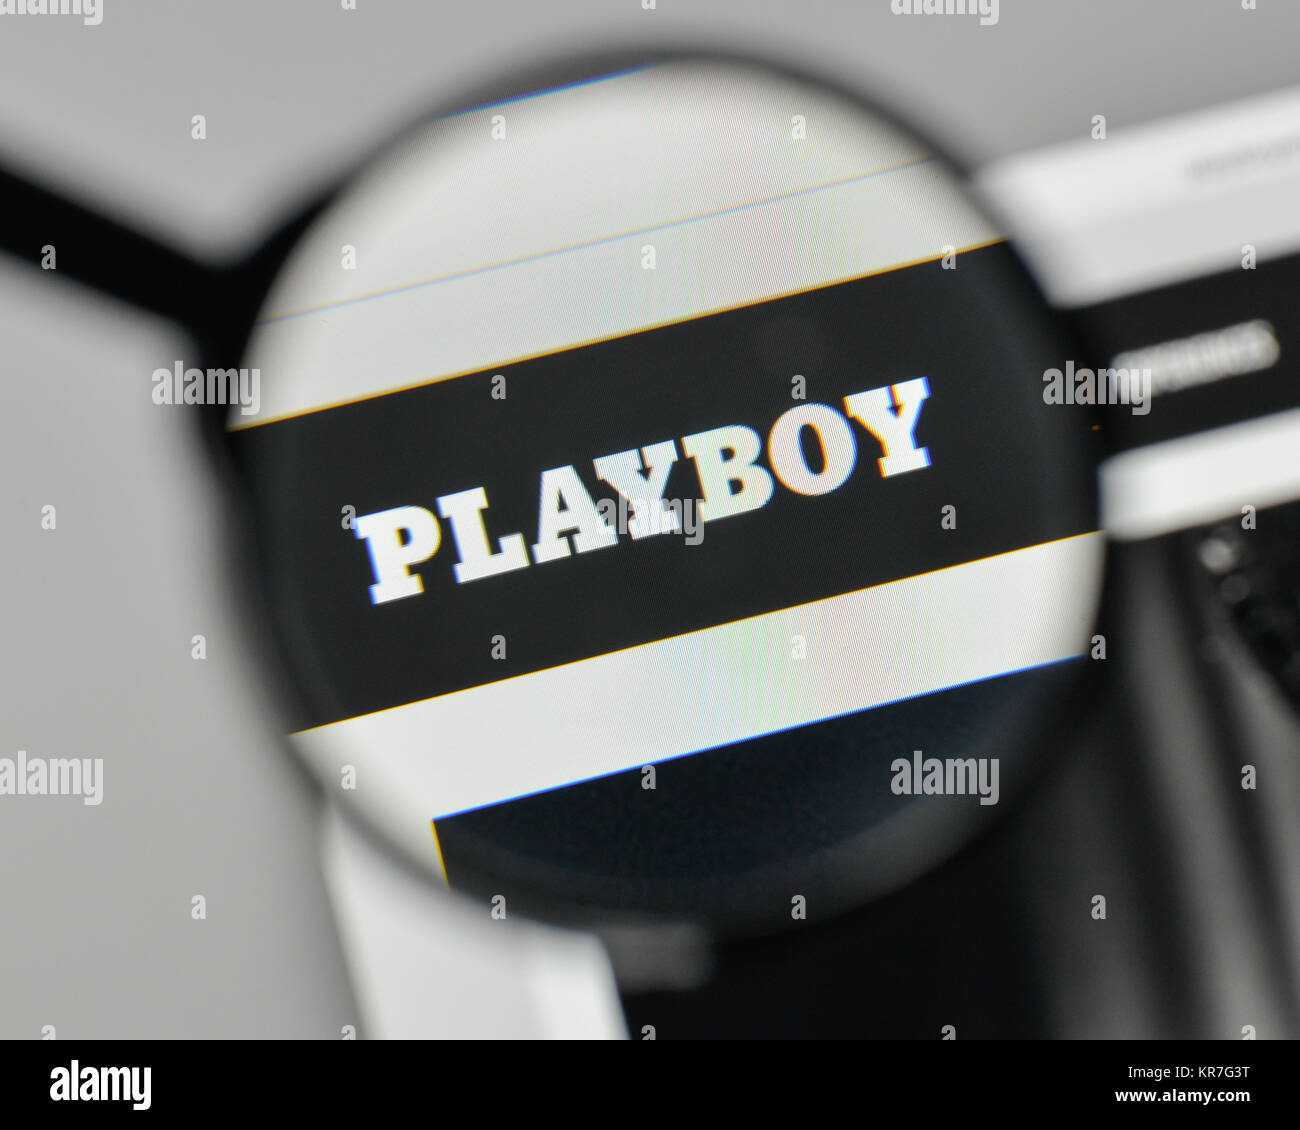 Playboy symbol stock photos playboy symbol stock images alamy milan italy november 1 2017 playboy logo on the website homepage biocorpaavc Gallery